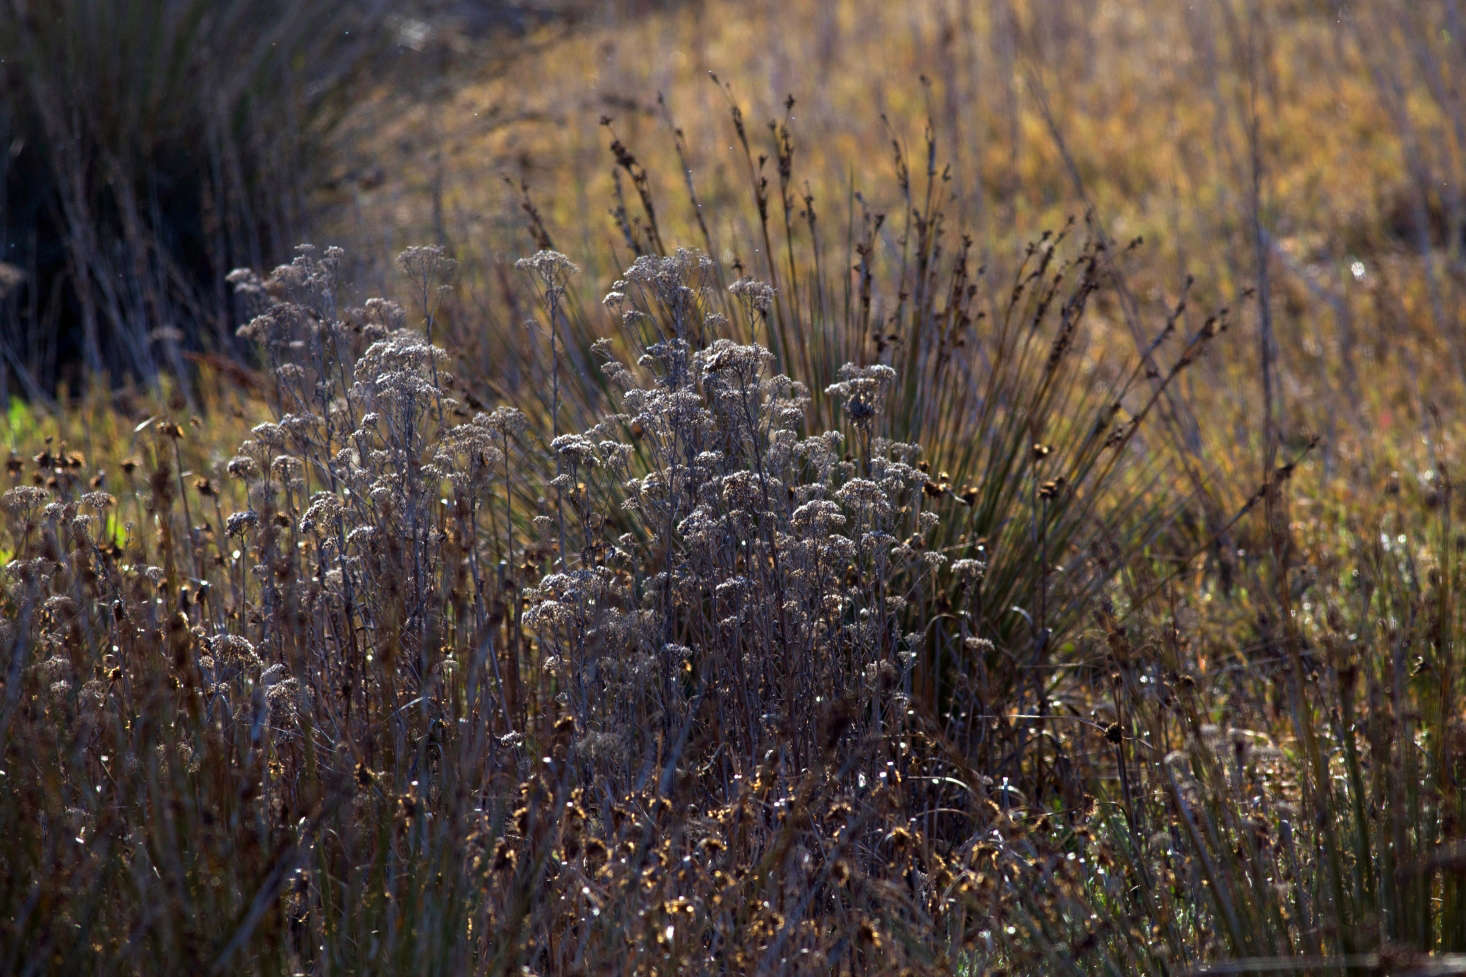 Grasses and perennials in December at Torrey Pines Nature Reserve in La Jolla, California. Photograph by Anne Reeves via Flickr.